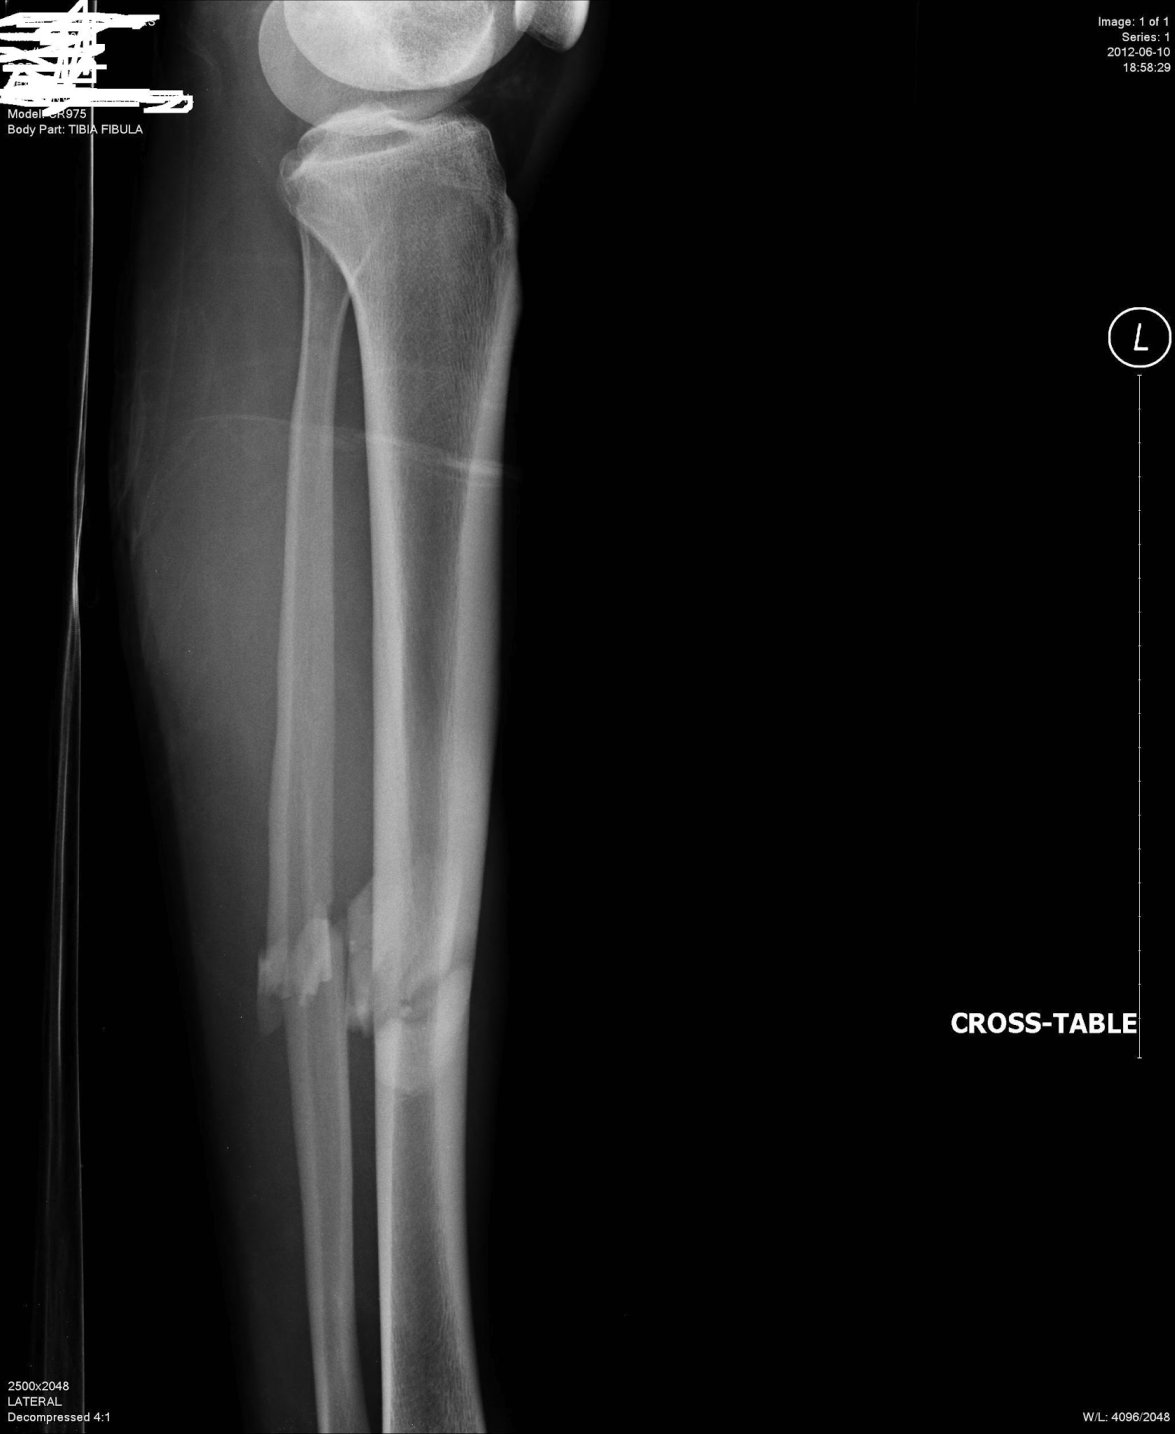 Fractured Tibia and Fibula (Broken Lower Leg Bones) with